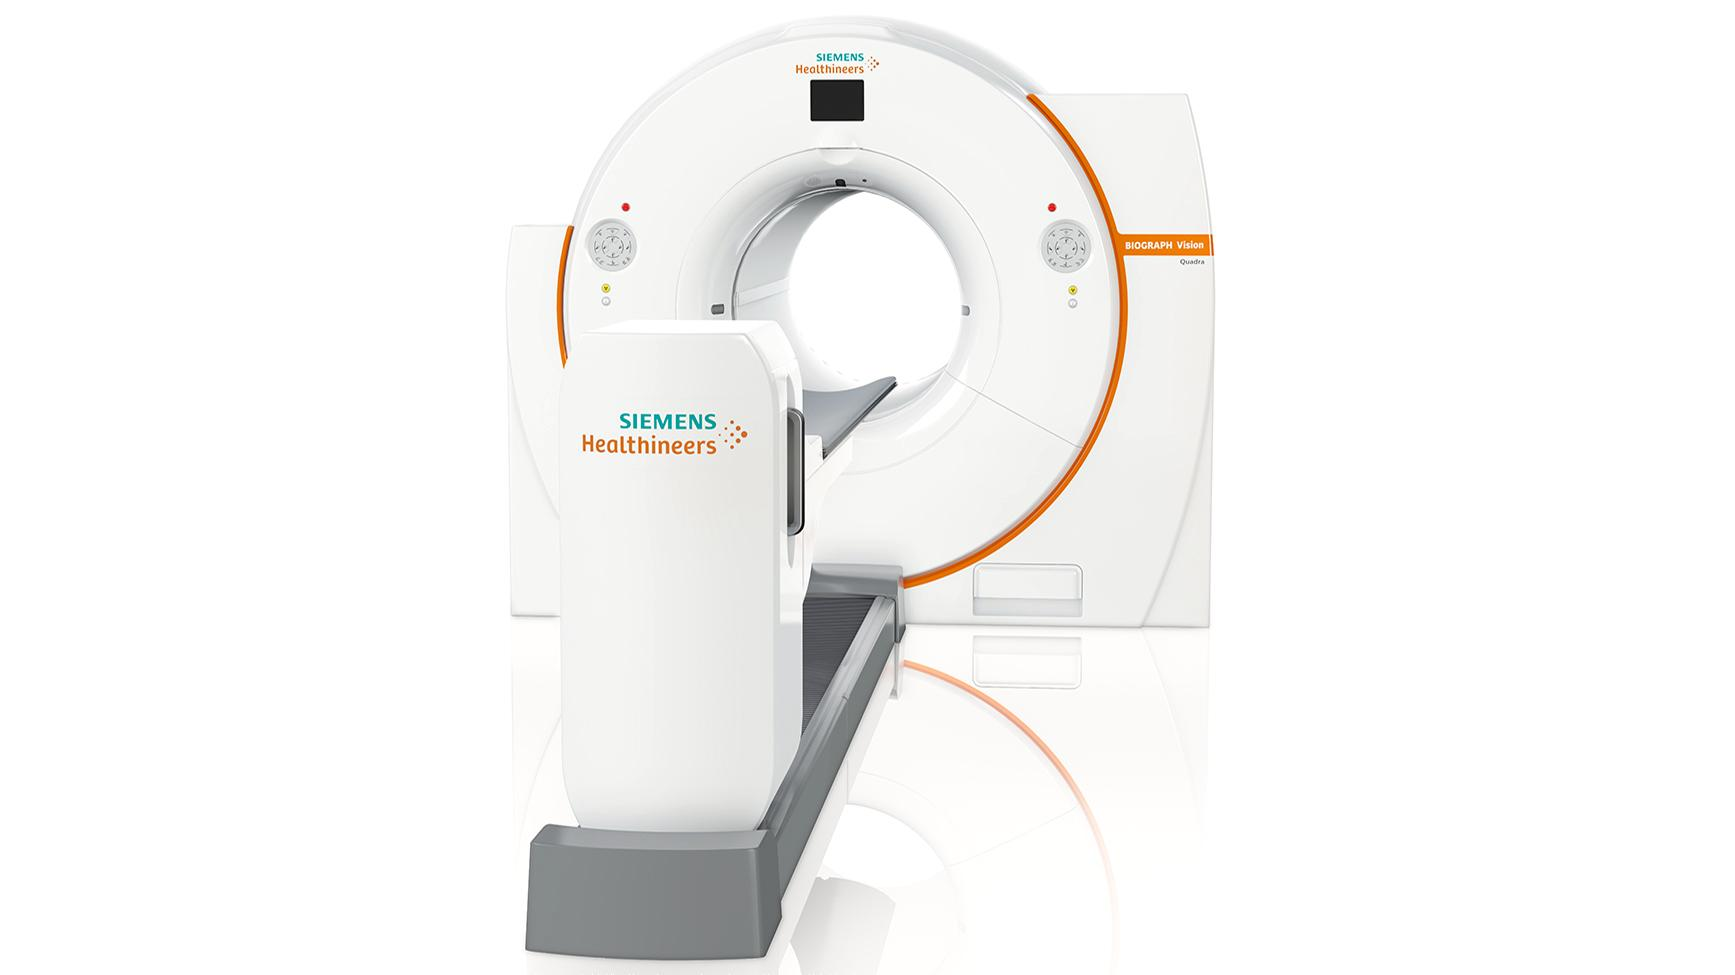 Siemens Healthineers Introduces Biograph Vision Quadra Extended Axial FoV PET/CT Scanner